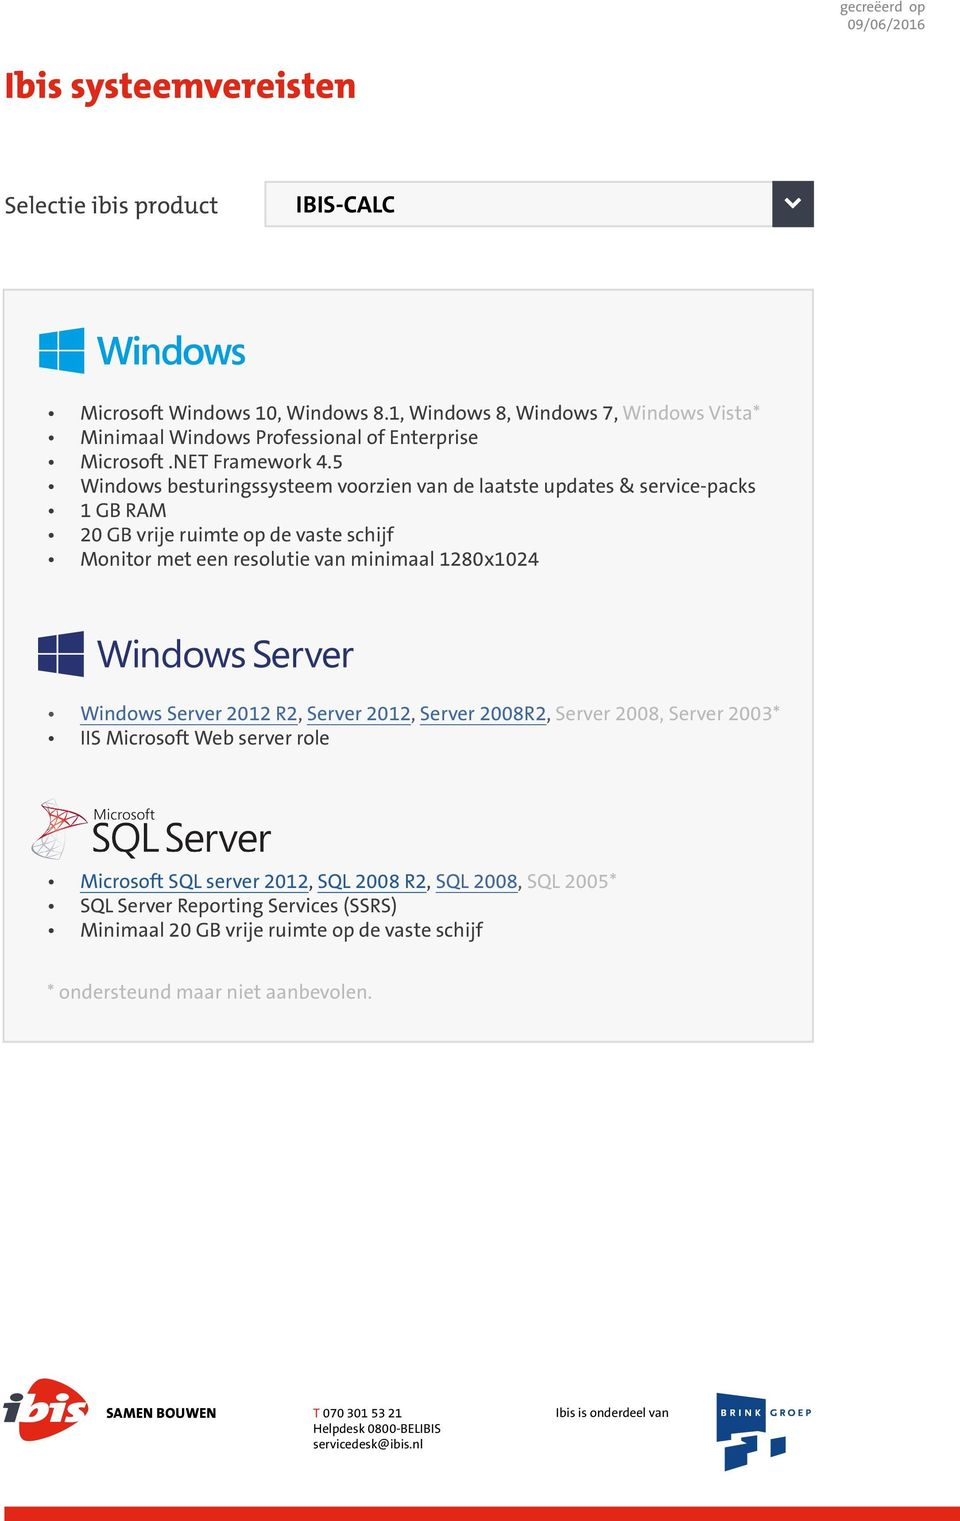 minimaal 1280x1024 Windows Server 2012 R2, Server 2012, Server 2008R2, Server 2008, Server 2003* IIS Microsoft Web server role Microsoft SQL server